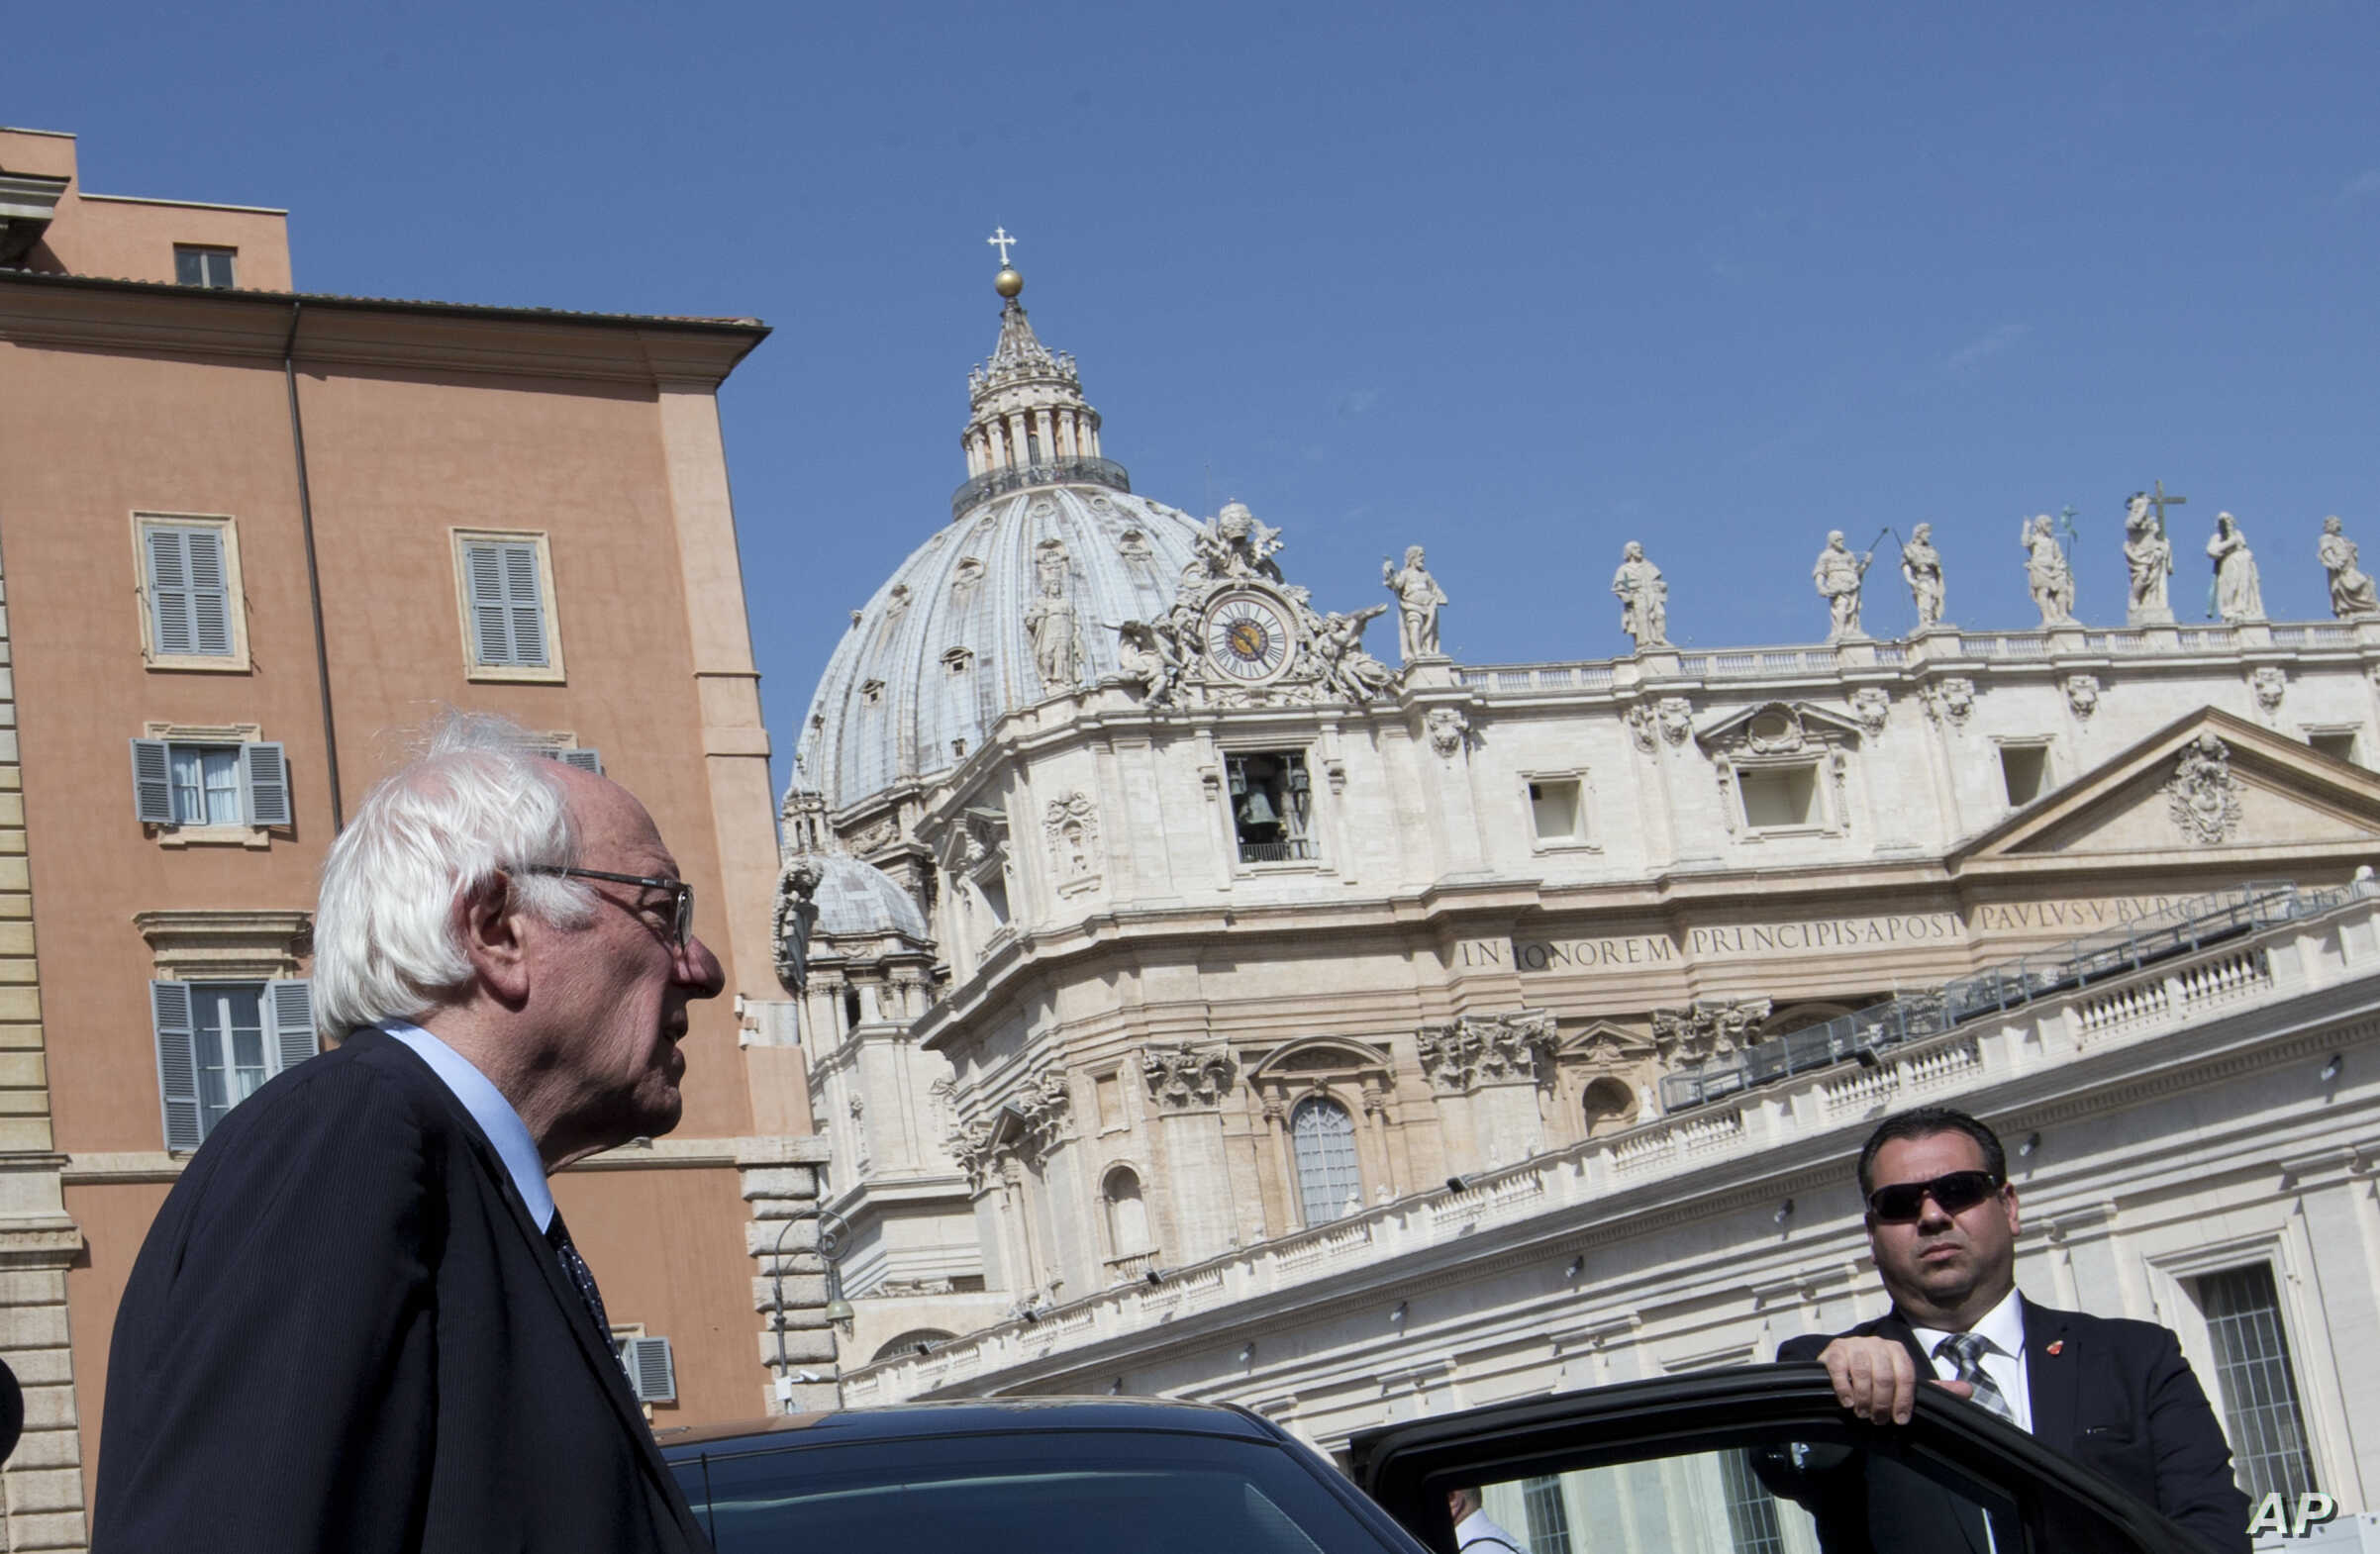 US presidential candidate Bernie Sanders, backdropped by the dome of St. Peter's Basilica, leaves after an interview with the Associated Press, at the Vatican, April 16, 2016.